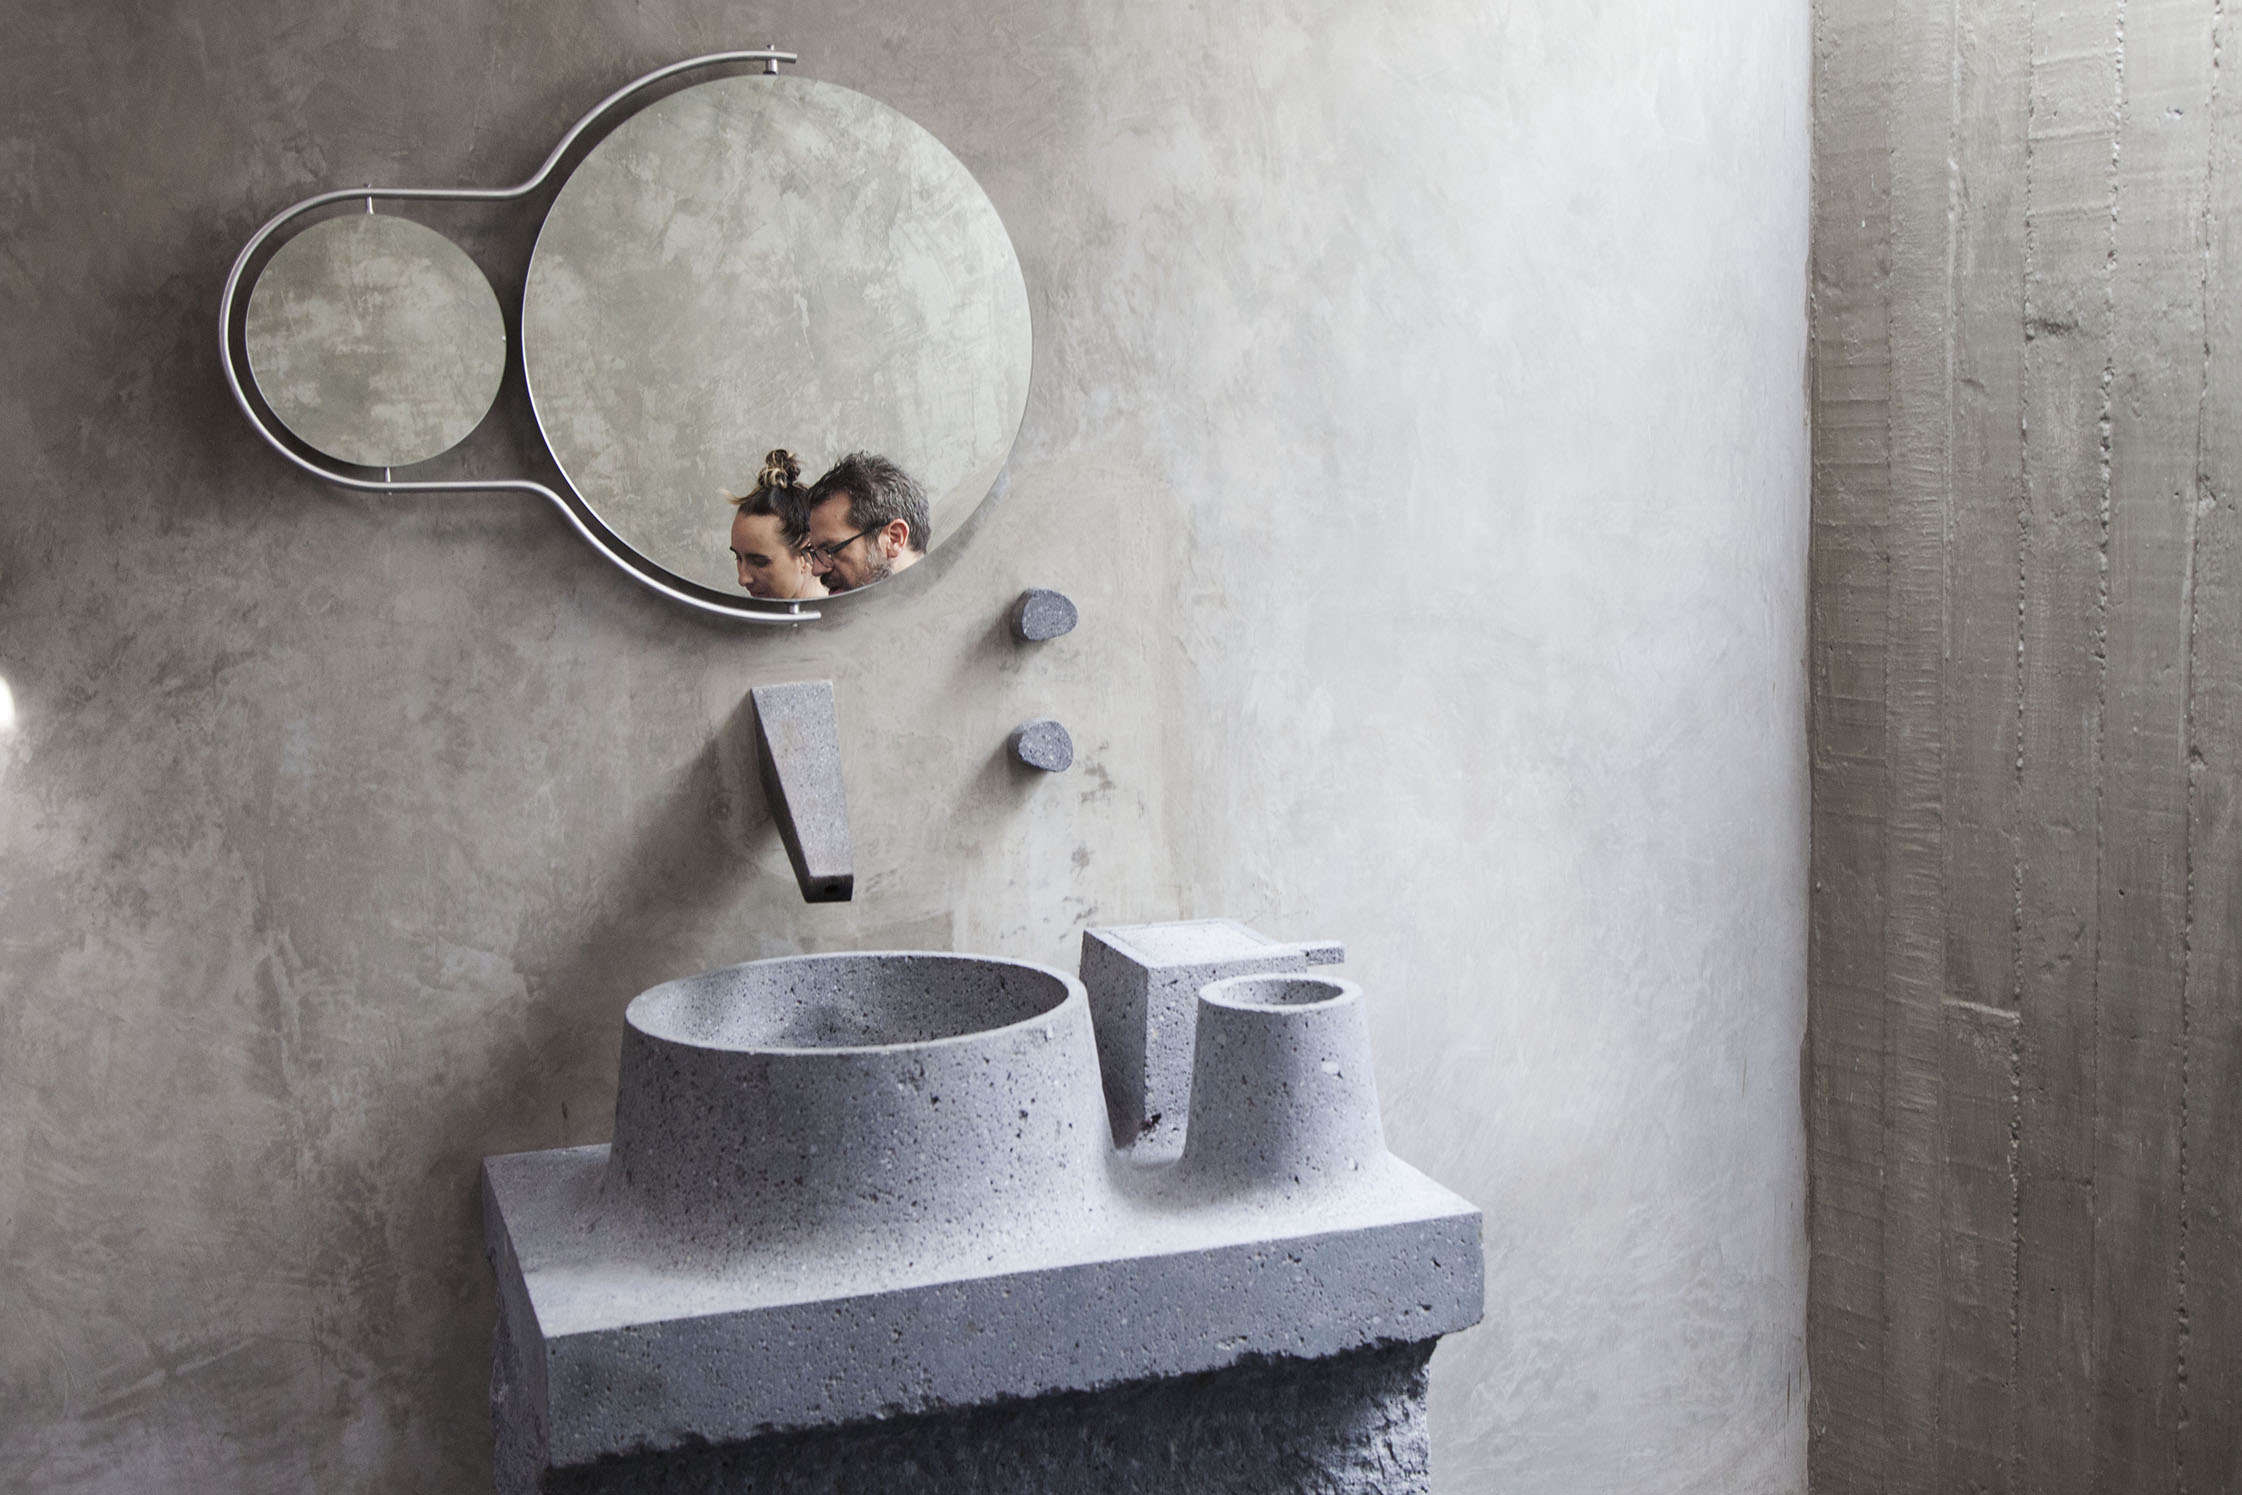 Caste concrete bathroom sink in Pedro Reyes and Carla Fernandez's Brutalist house in Mexico City via FvF | Remodelista